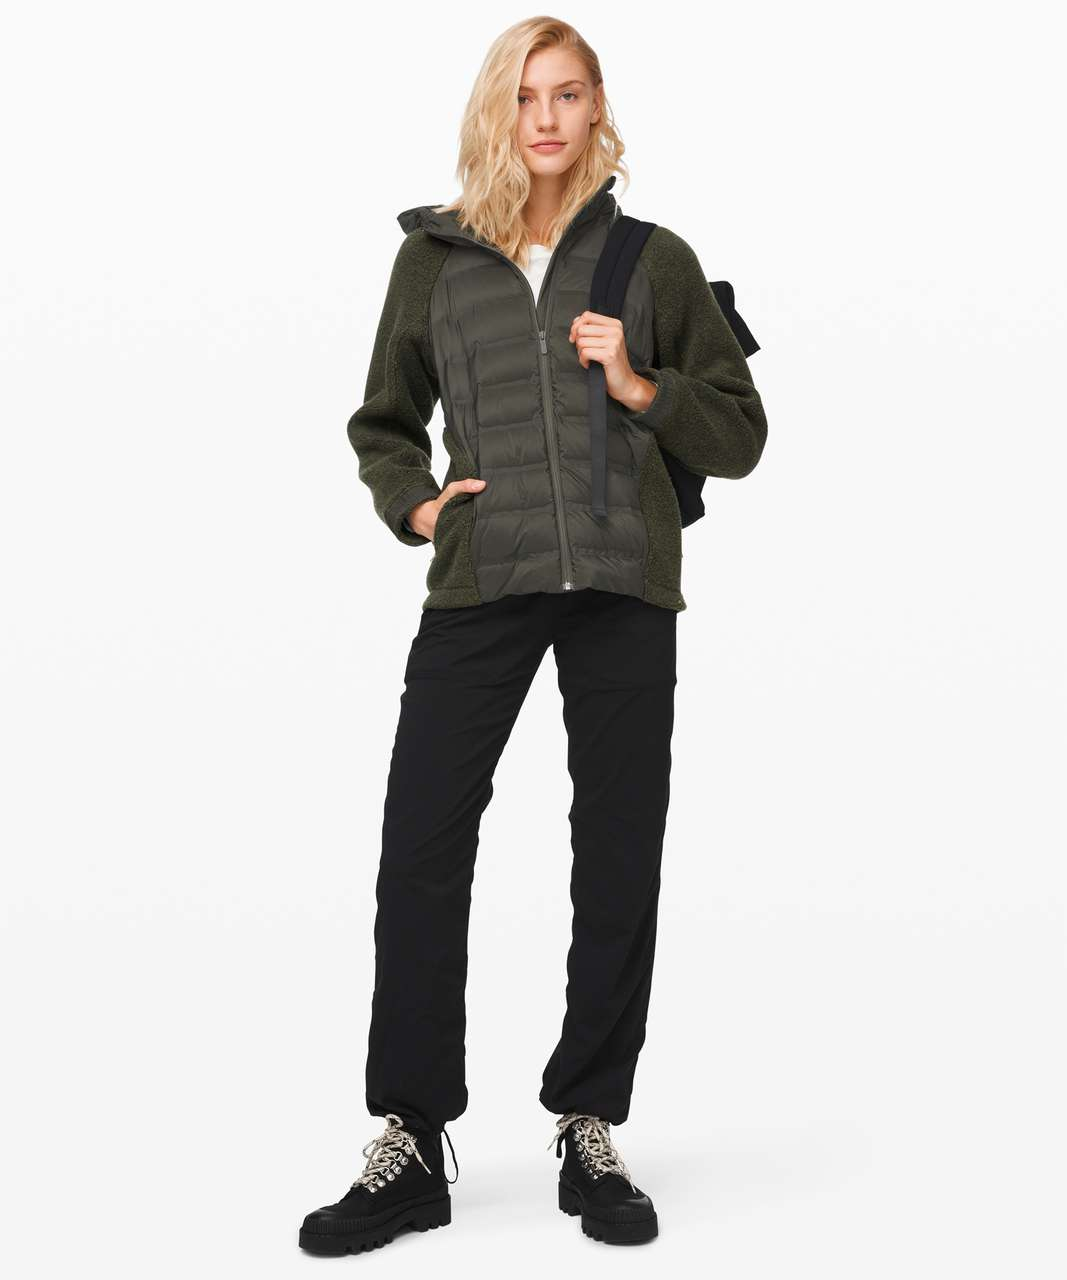 Lululemon Go Cozy Insulated Jacket - Heathered Dark Olive / Dark Olive